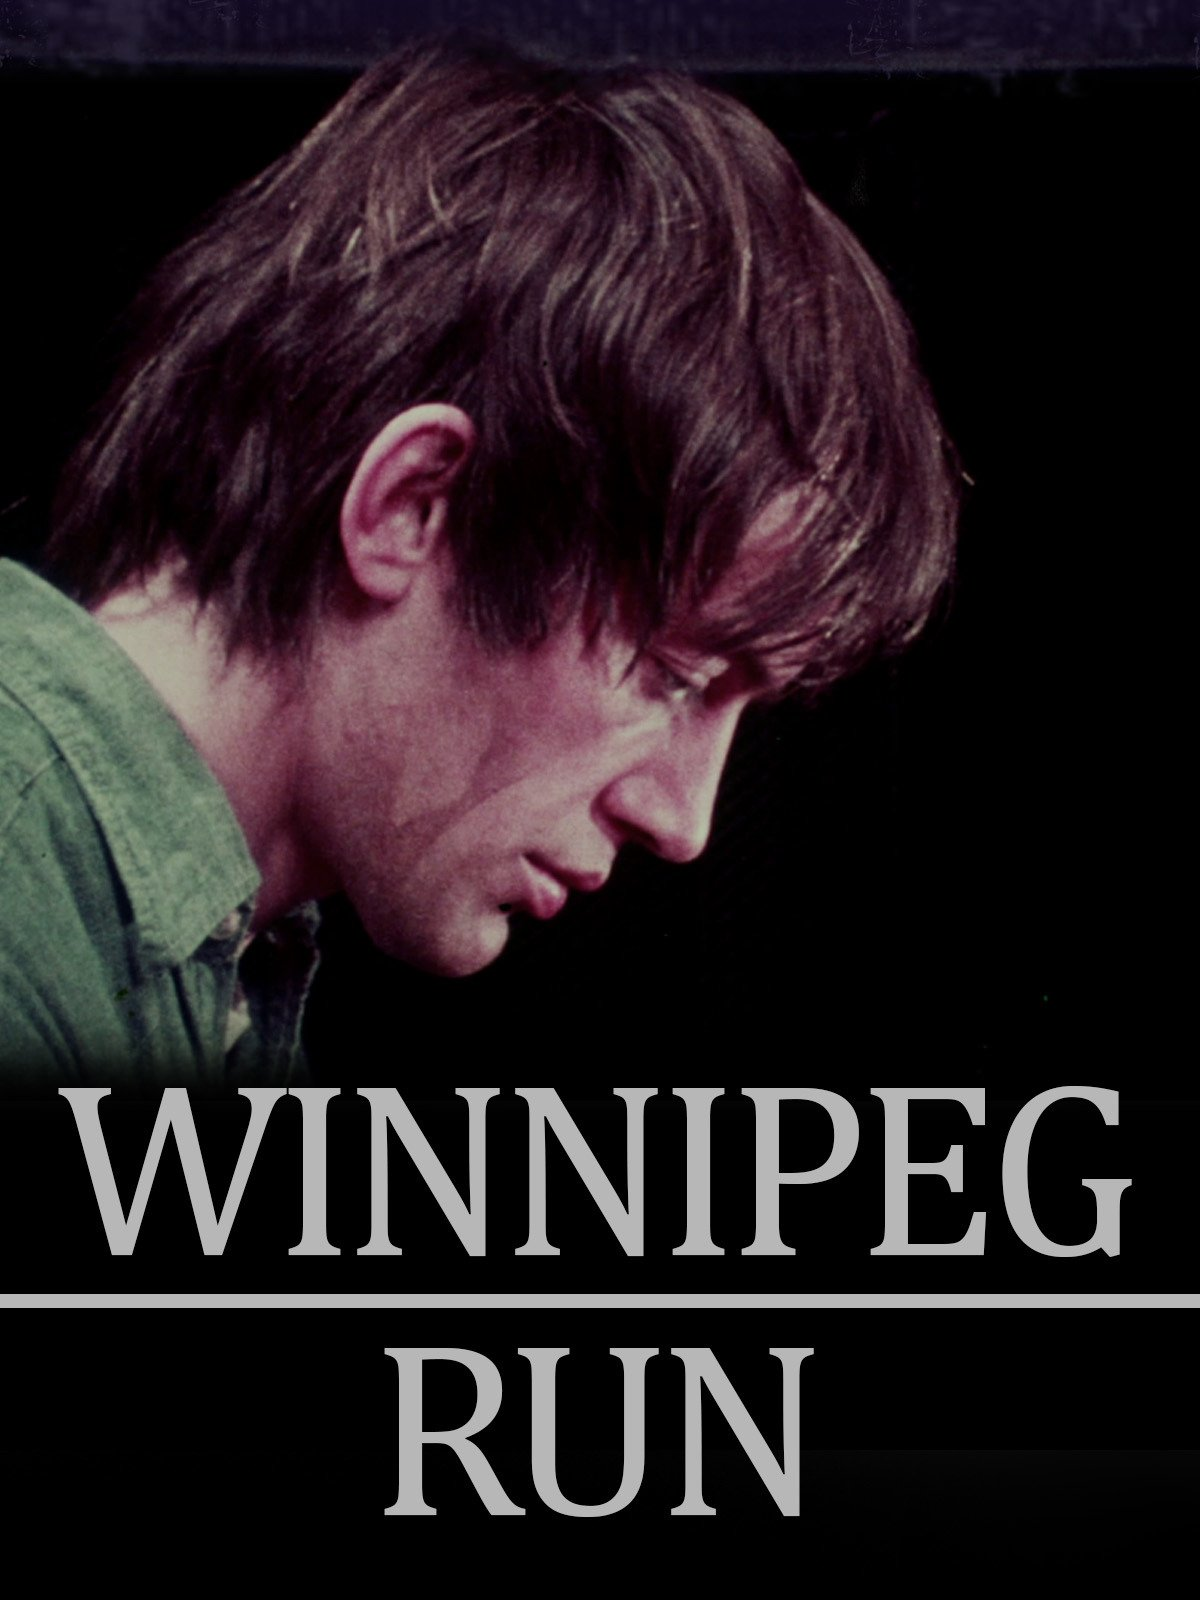 The Winnipeg Run